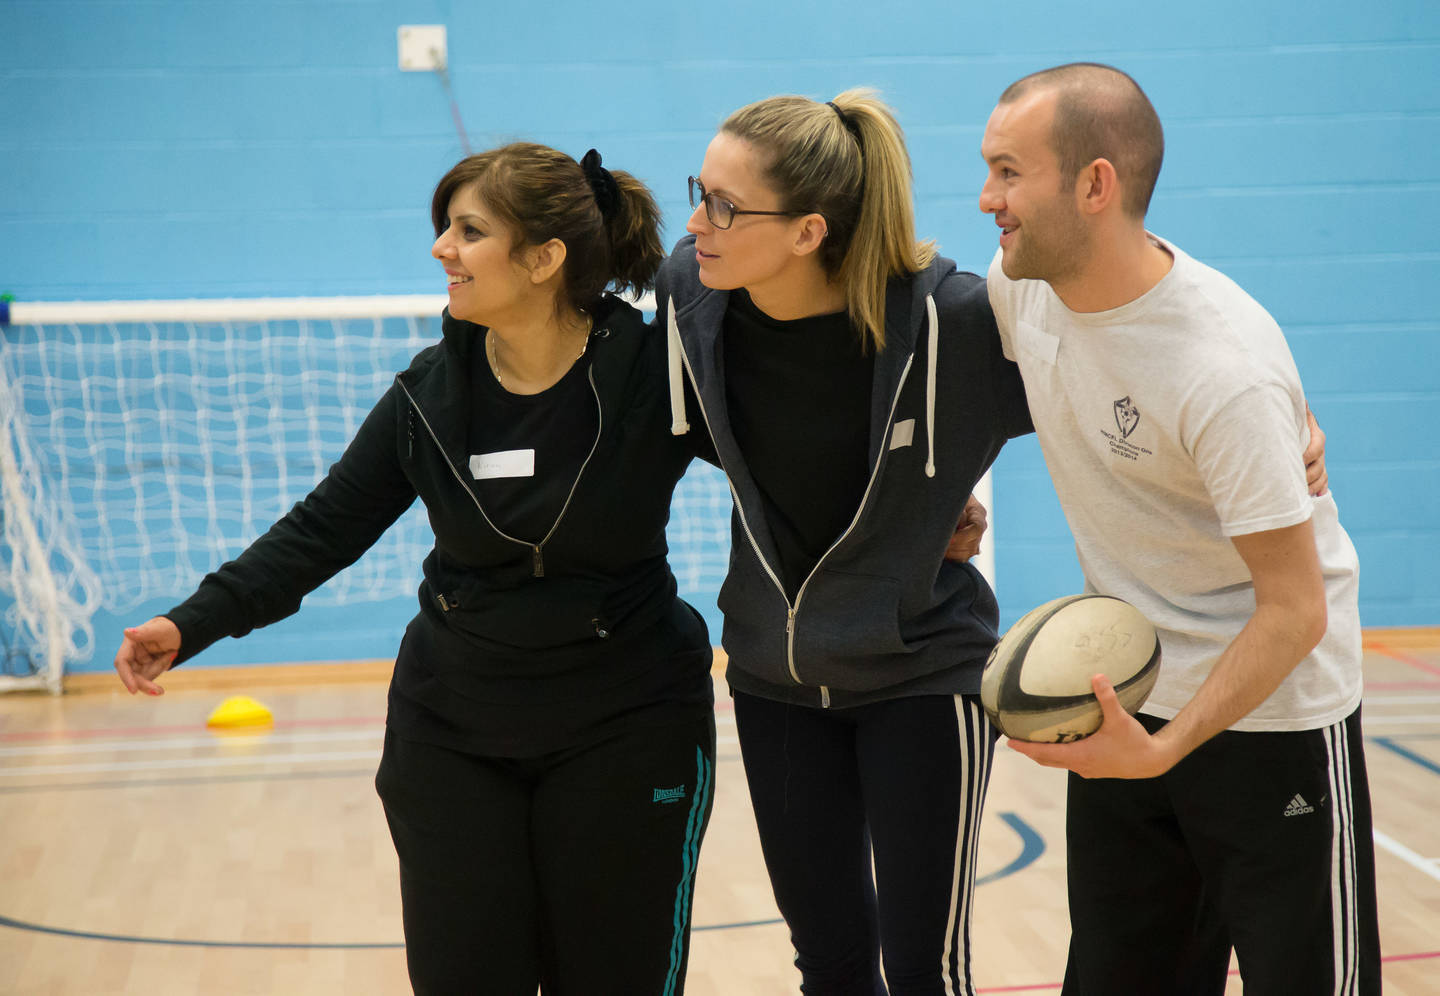 Coaches taking part in IAP workshop